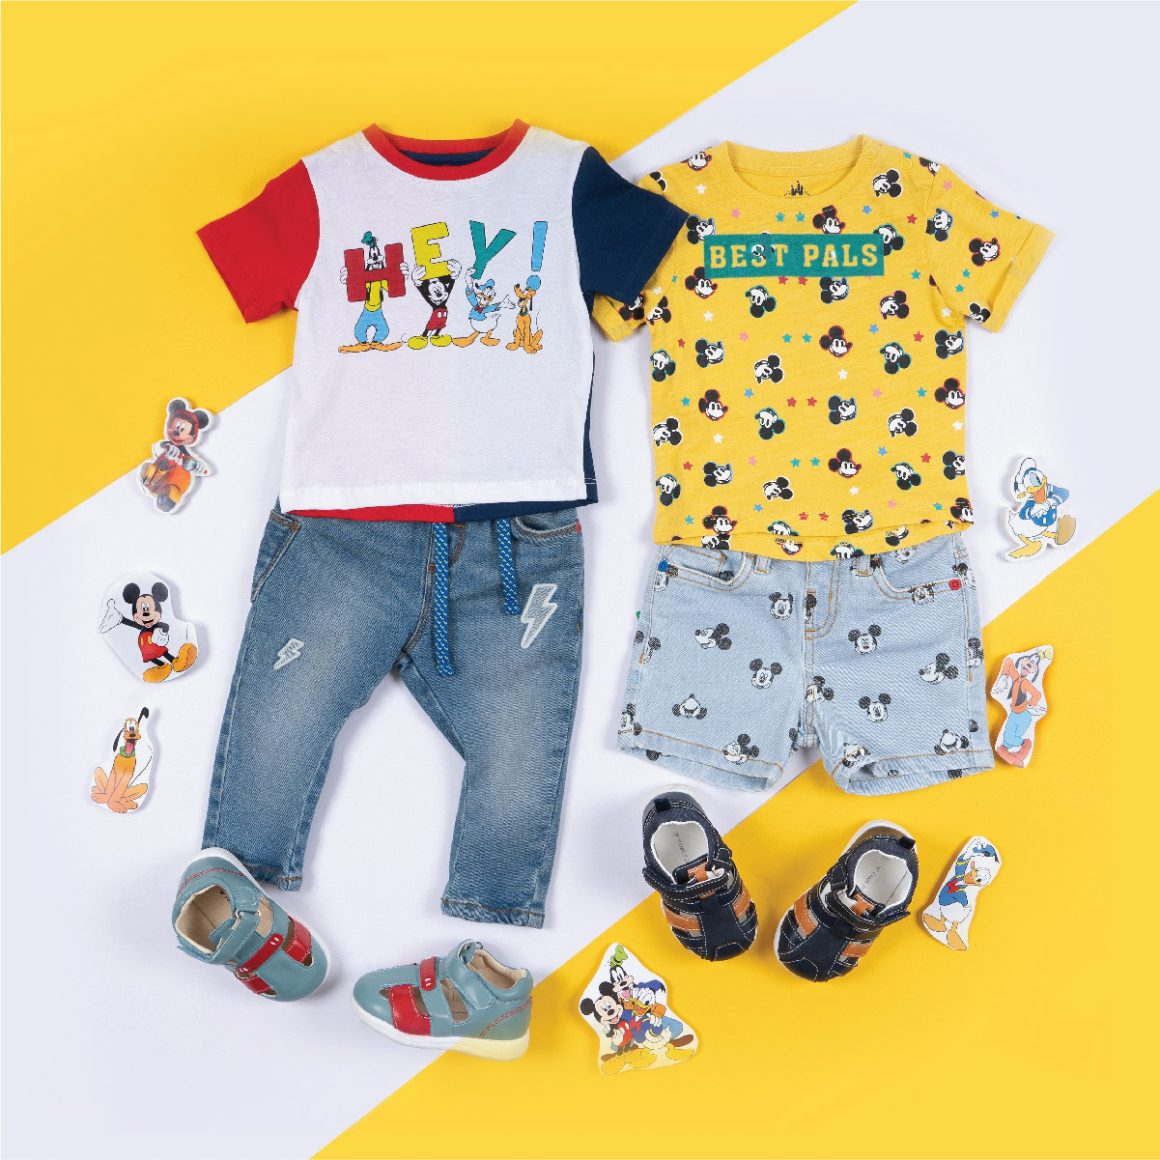 Disney collection for women and kids